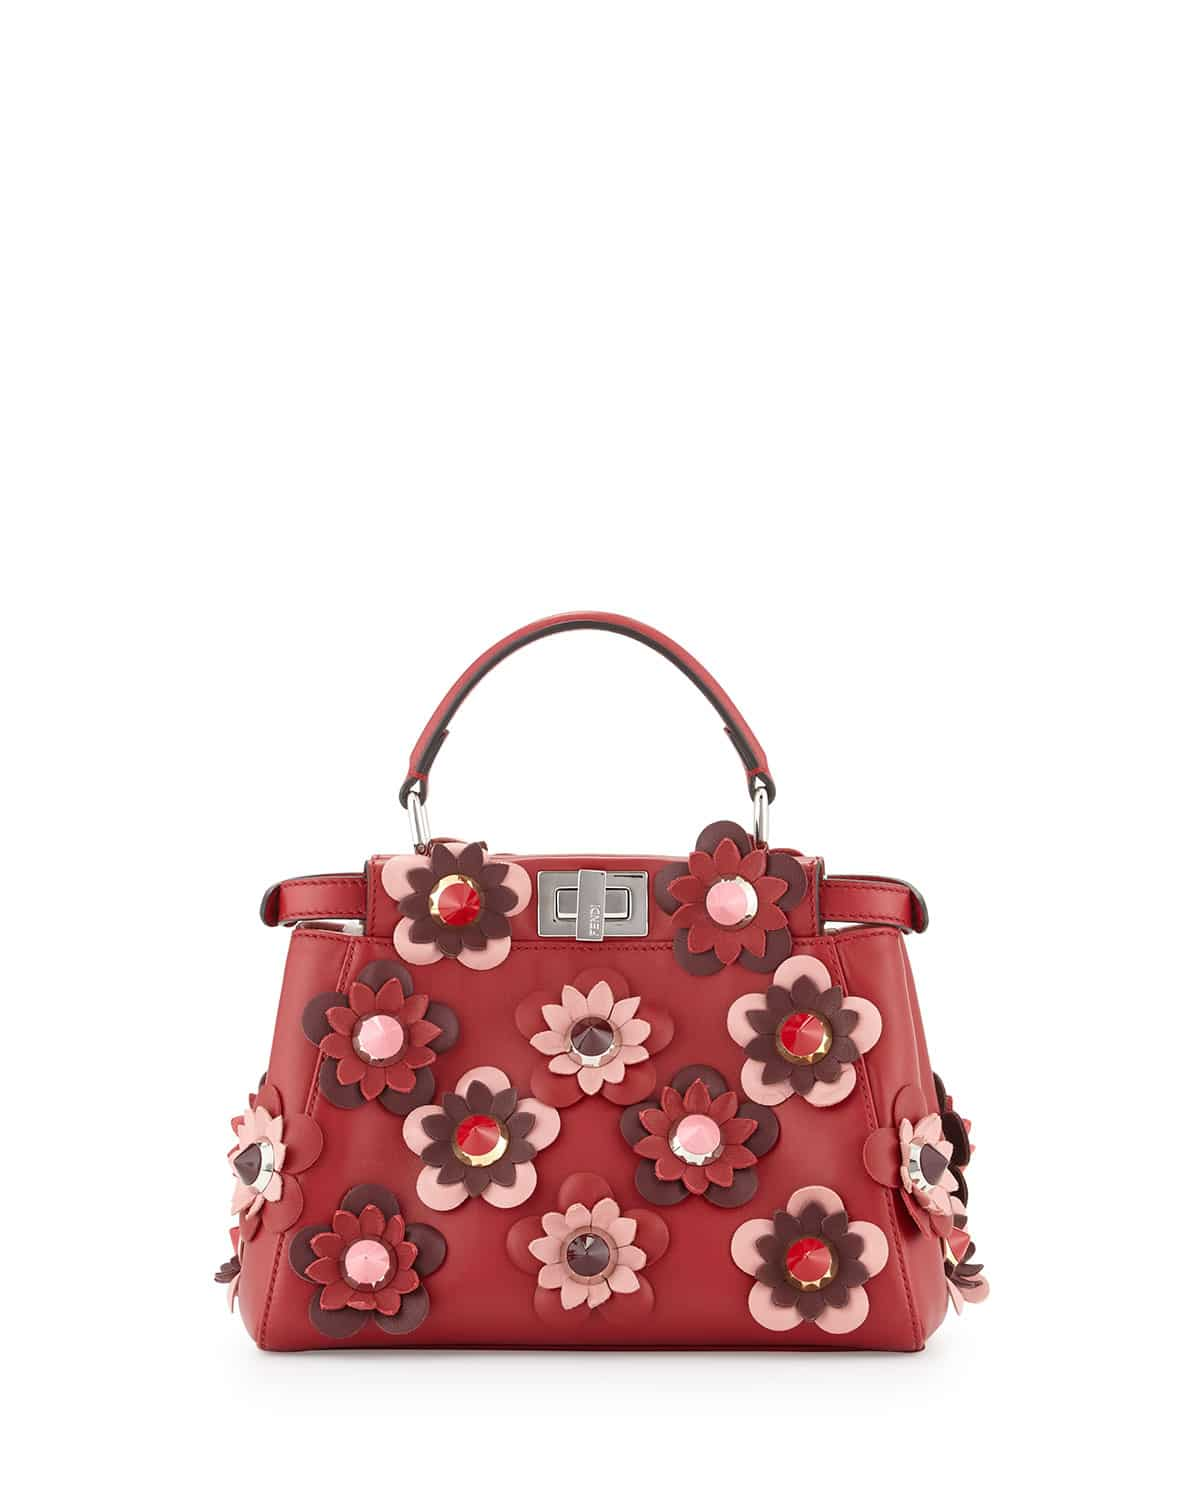 3edfcdddee35 Fendi Red All-over Flowers Peekaboo Mini Bag